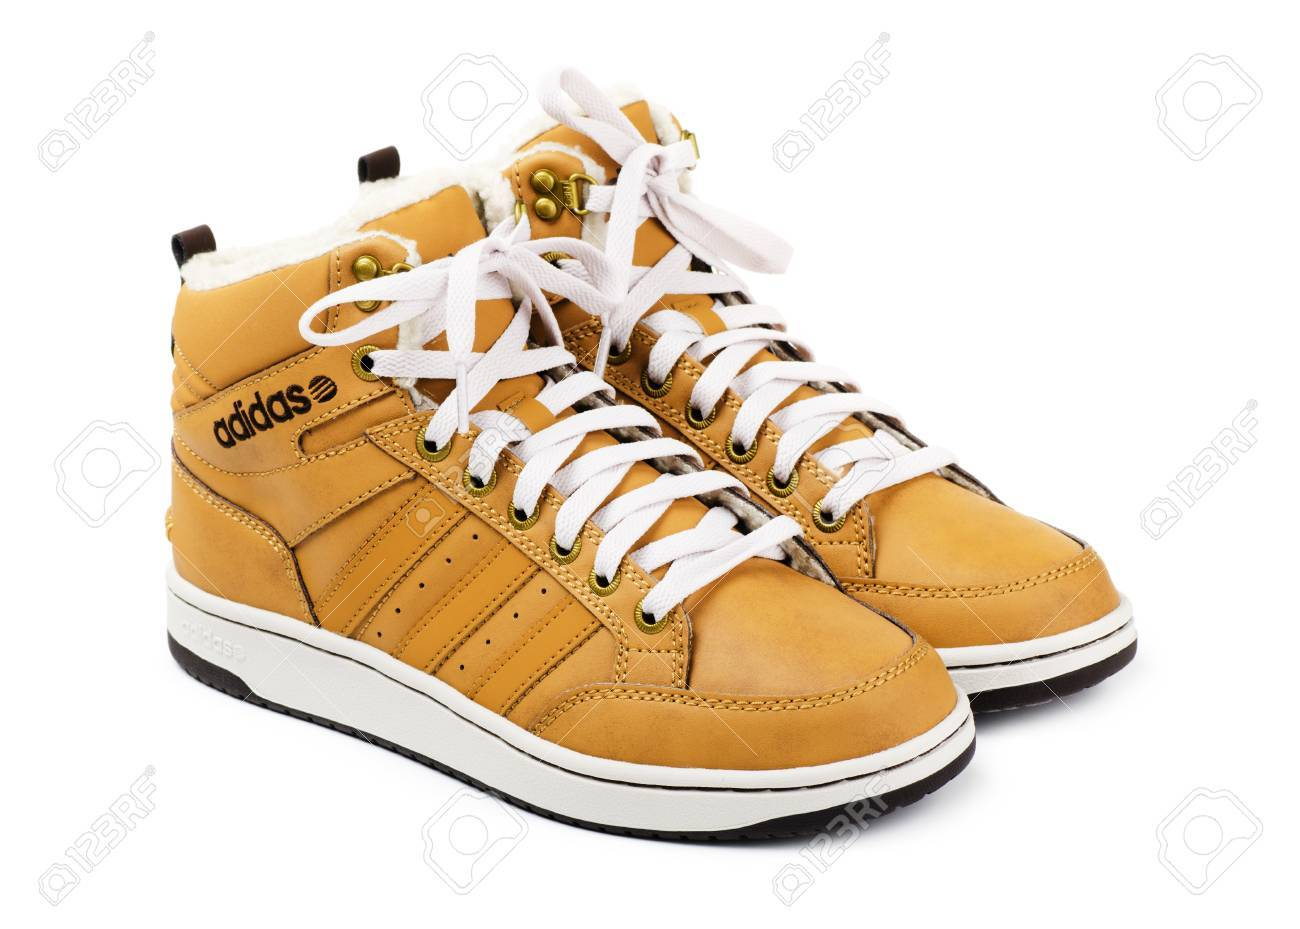 best sneakers 66237 4879a ... mens black yellow white f21bf 88496  cheap samara russia october 31  2015 adidas neo sneakers for the winter 08909 af3b8